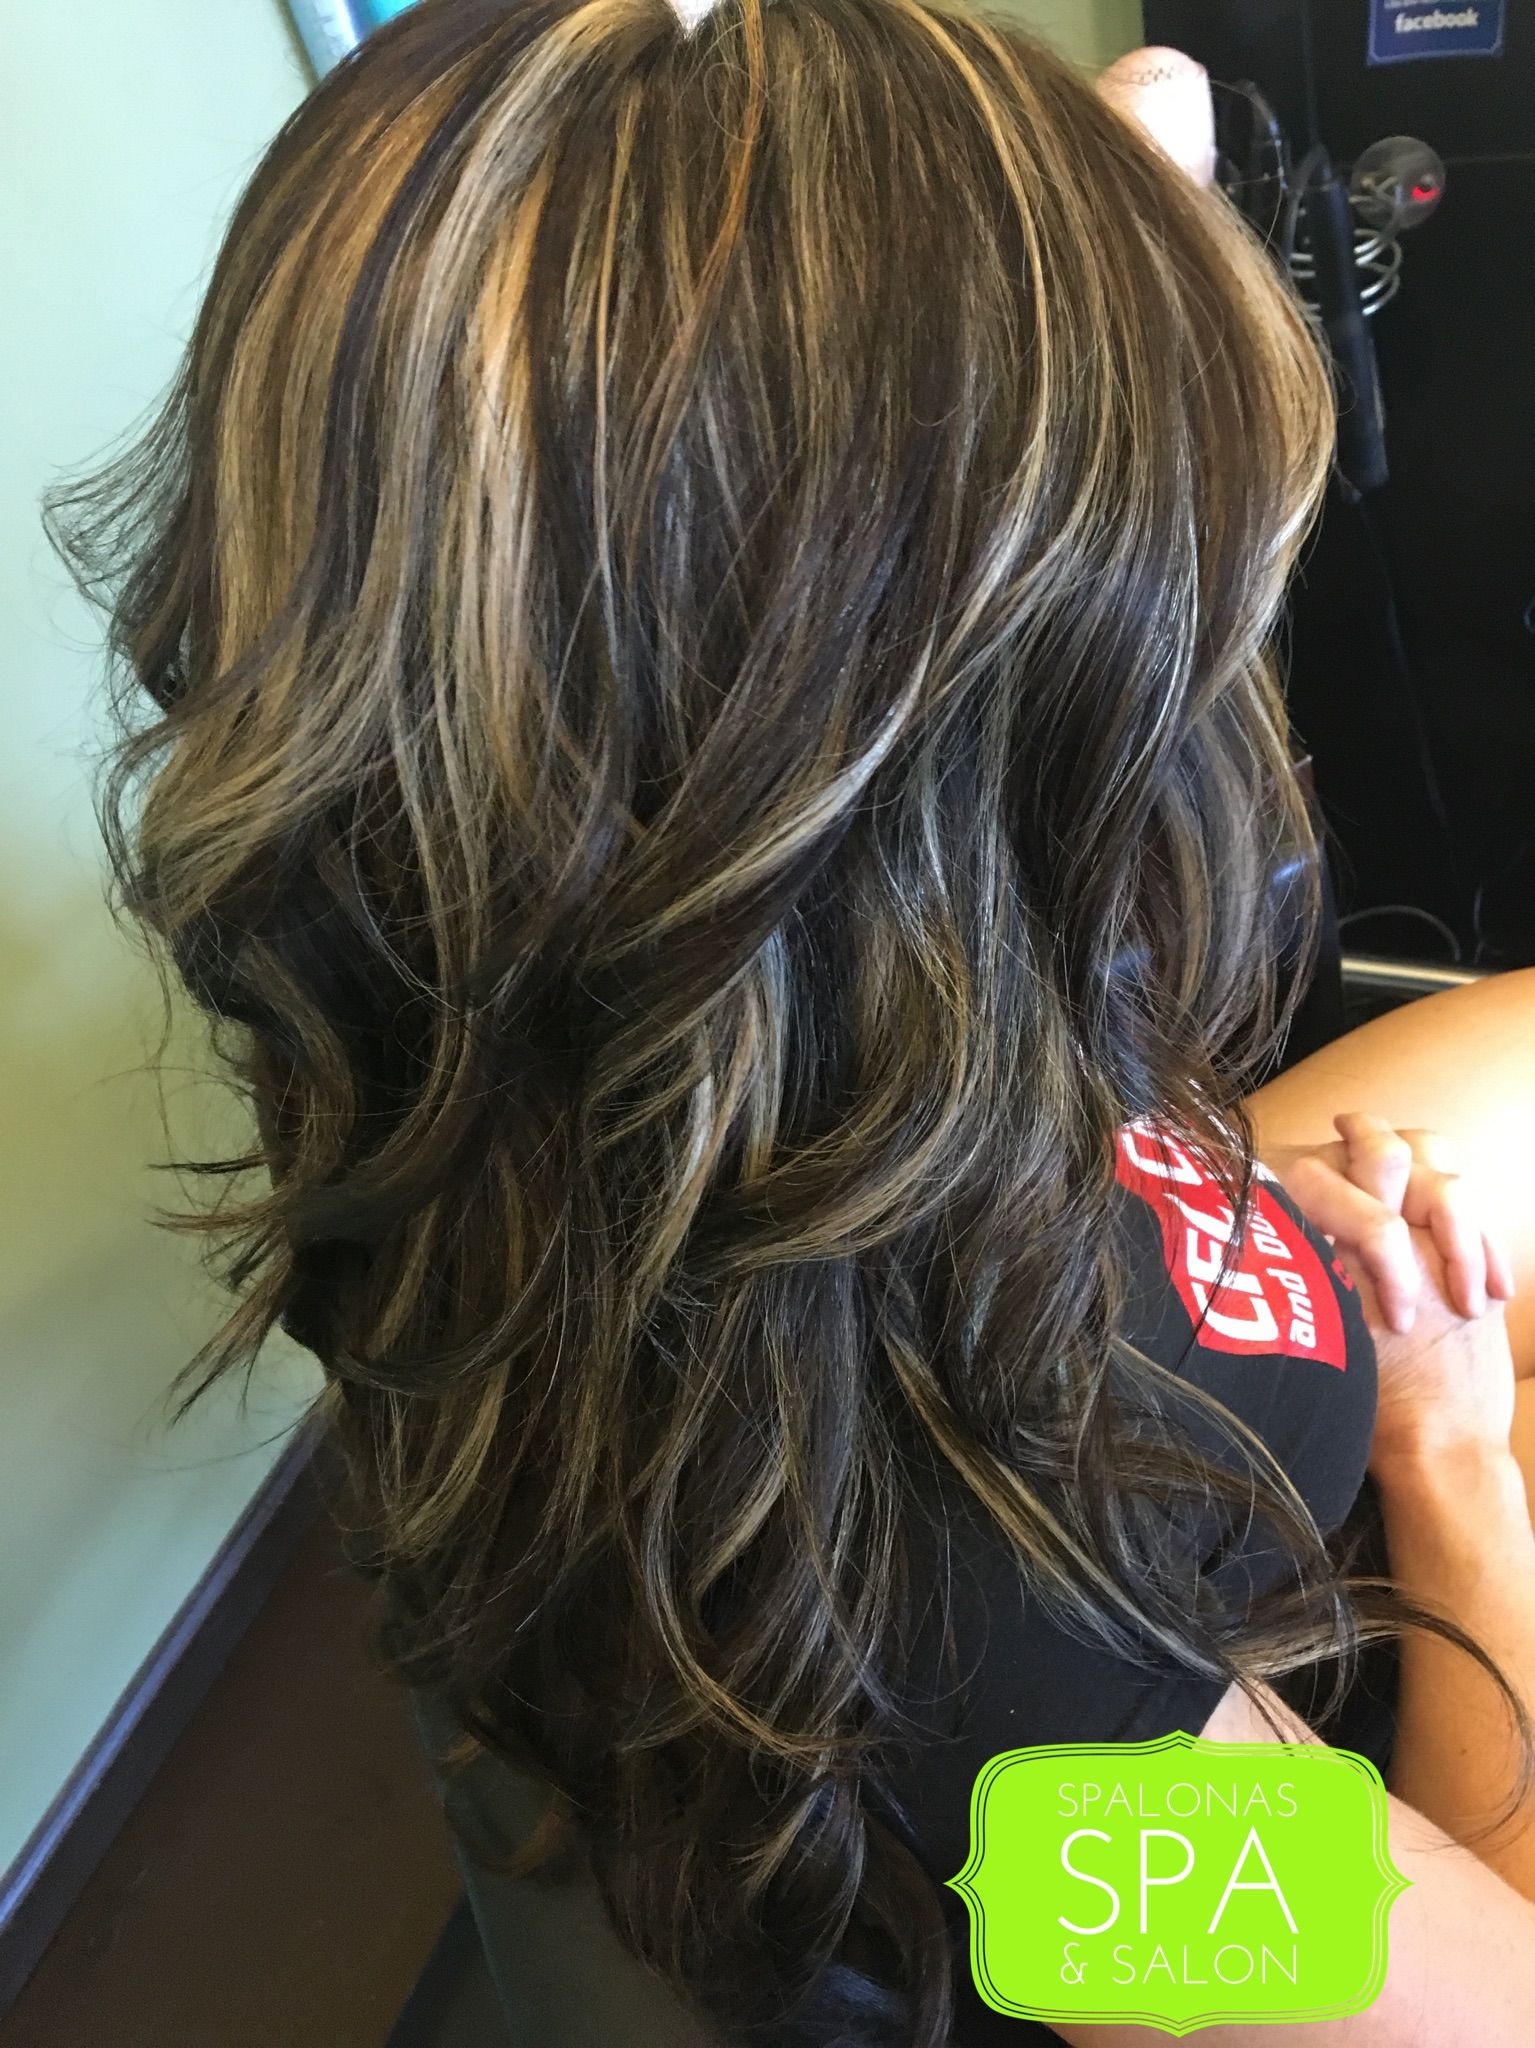 Rich Dark Neutral Chocolate Brown With Blended Highlights A Great Way To Camouflage Gray New Growth Www Spalona Blending Gray Hair Hair Color Highlights Hair